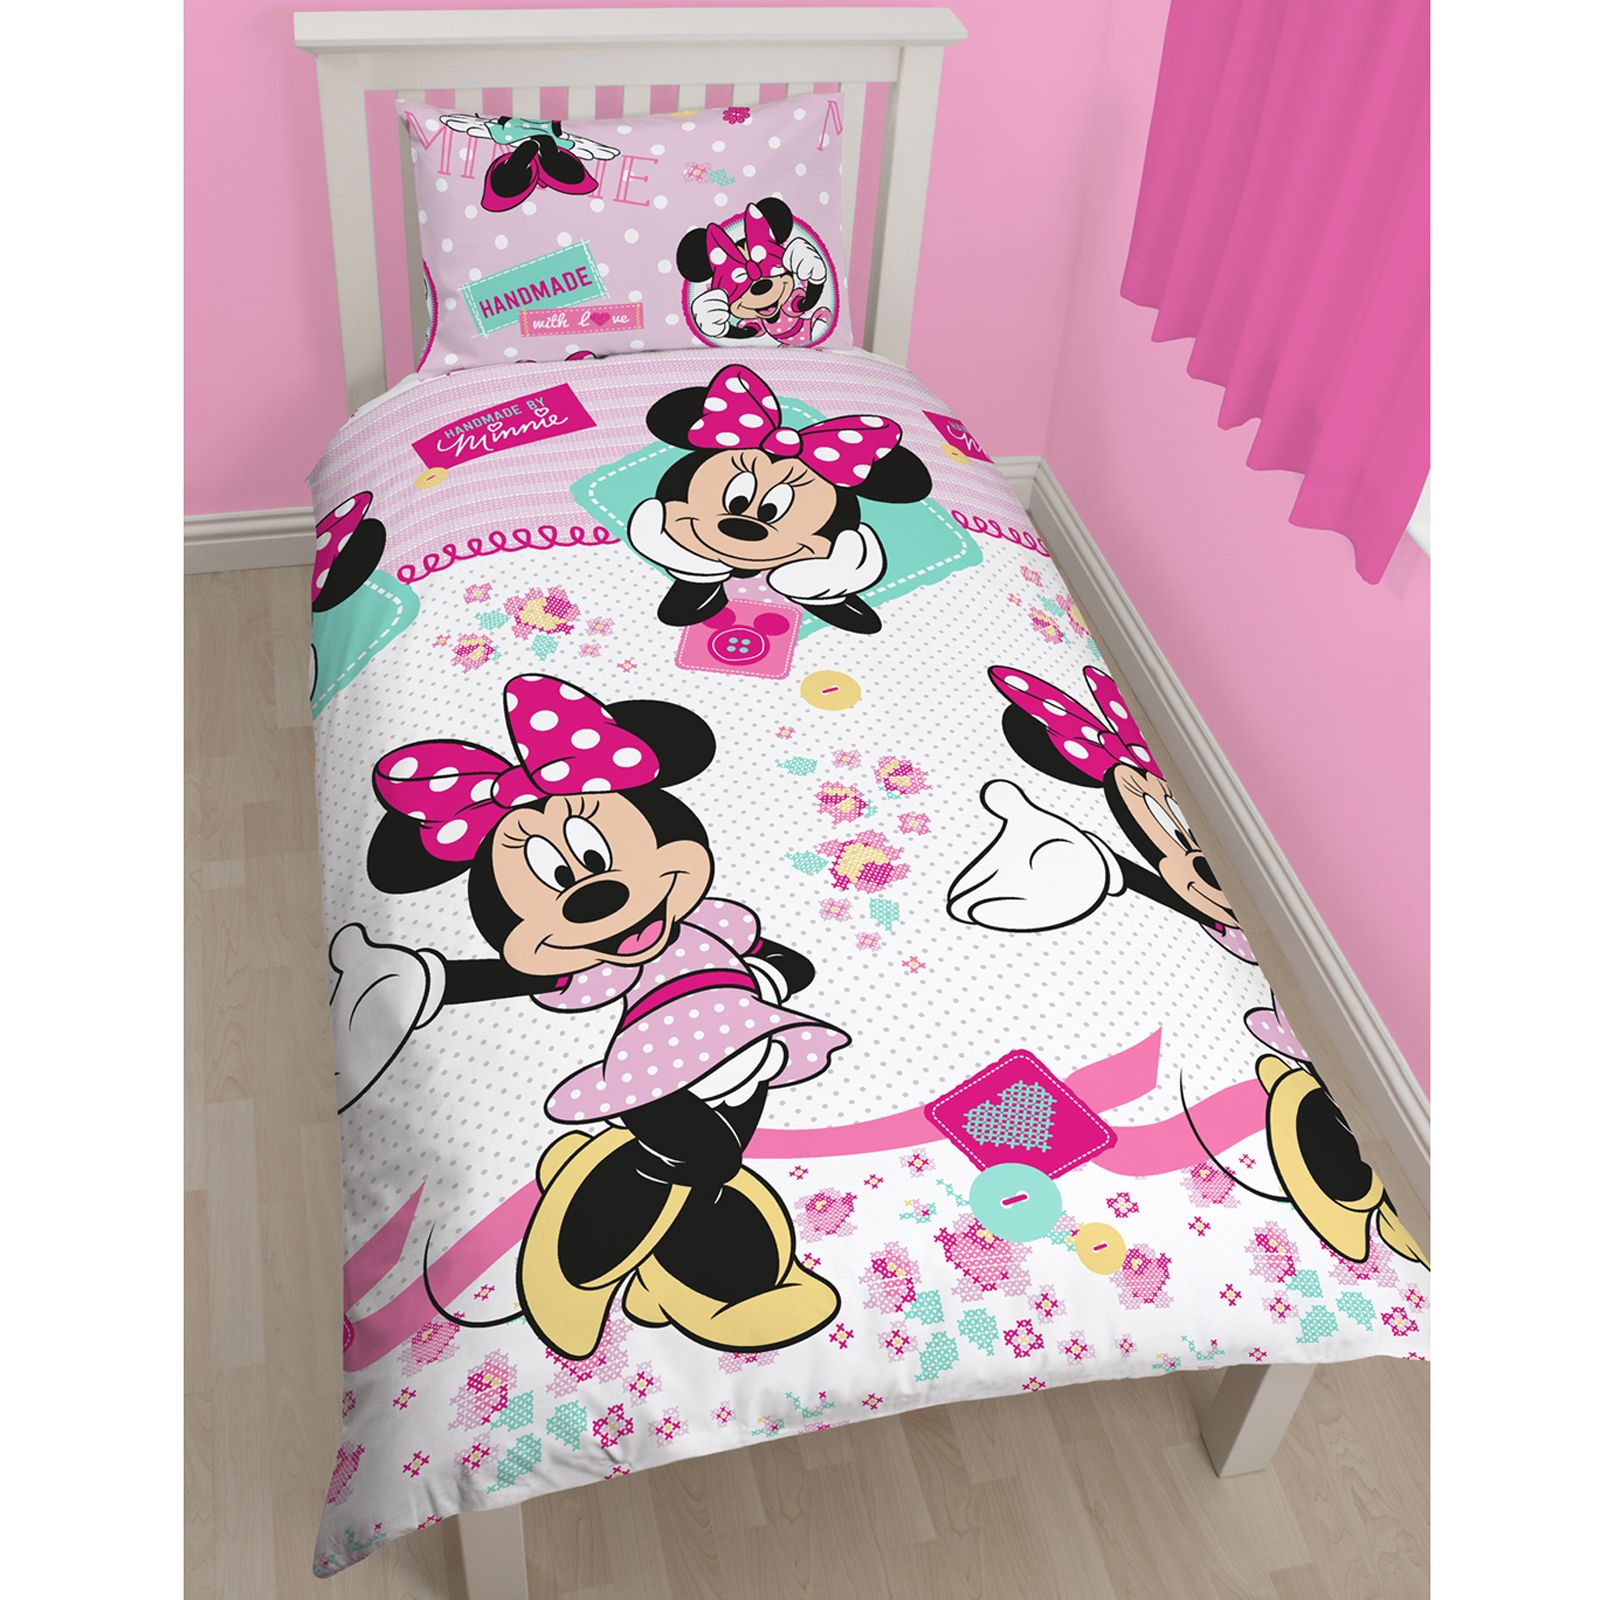 MINNIE MOUSE BEDROOM RANGE SINGLE DOUBLE DOONA COVER CURTAINS AVAILABLE